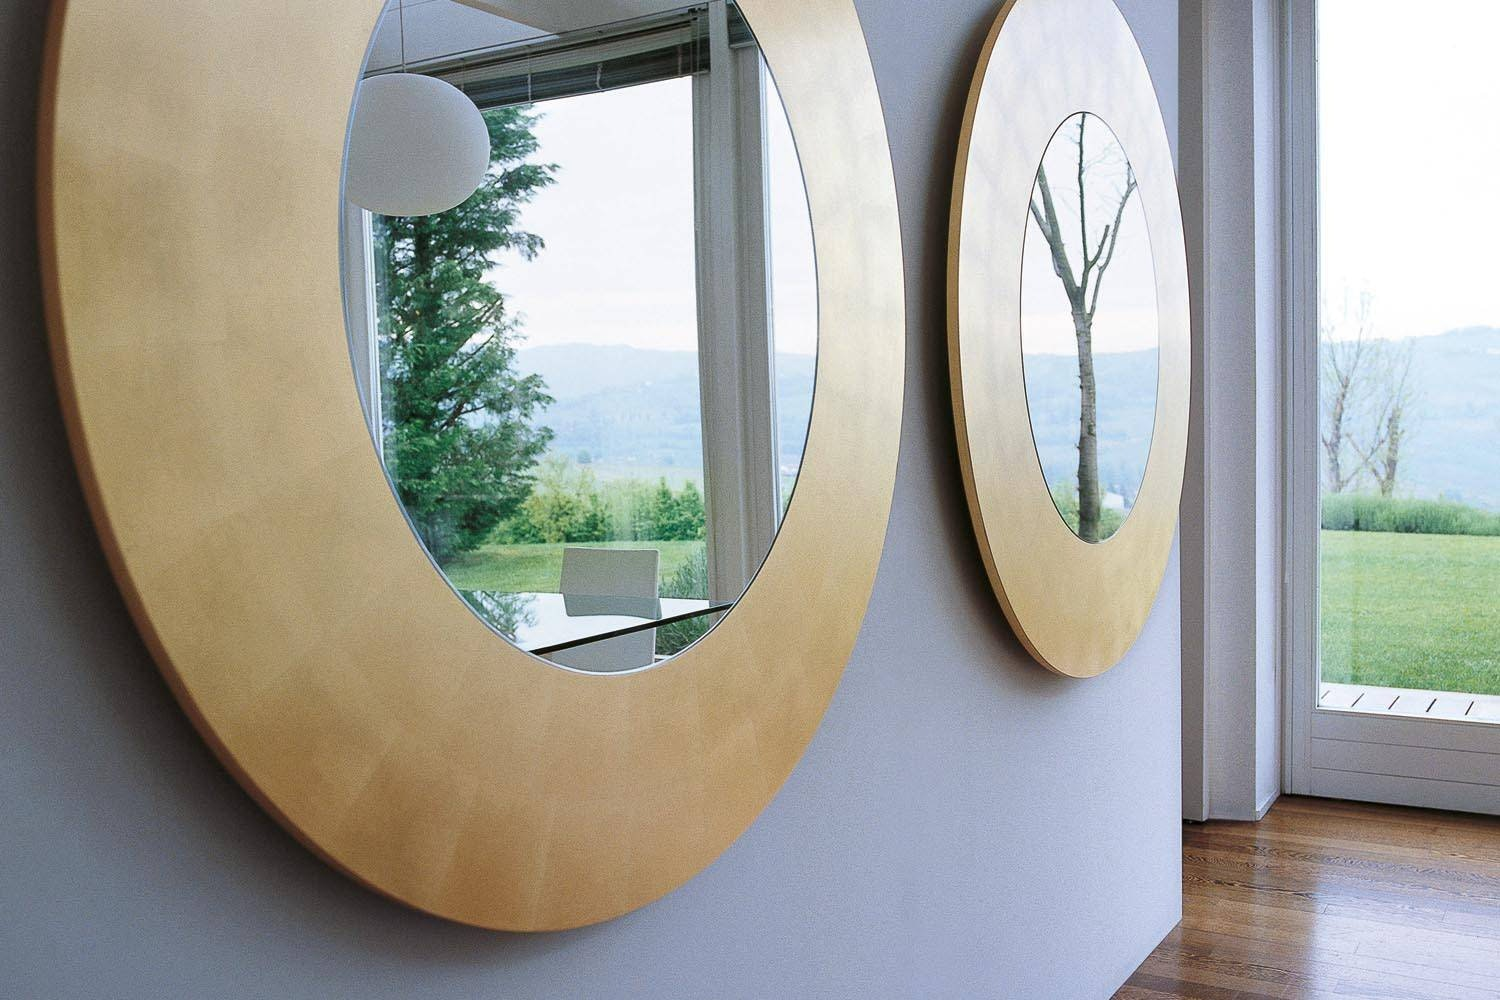 Four Seasons Mirror by Opera Design for Porada